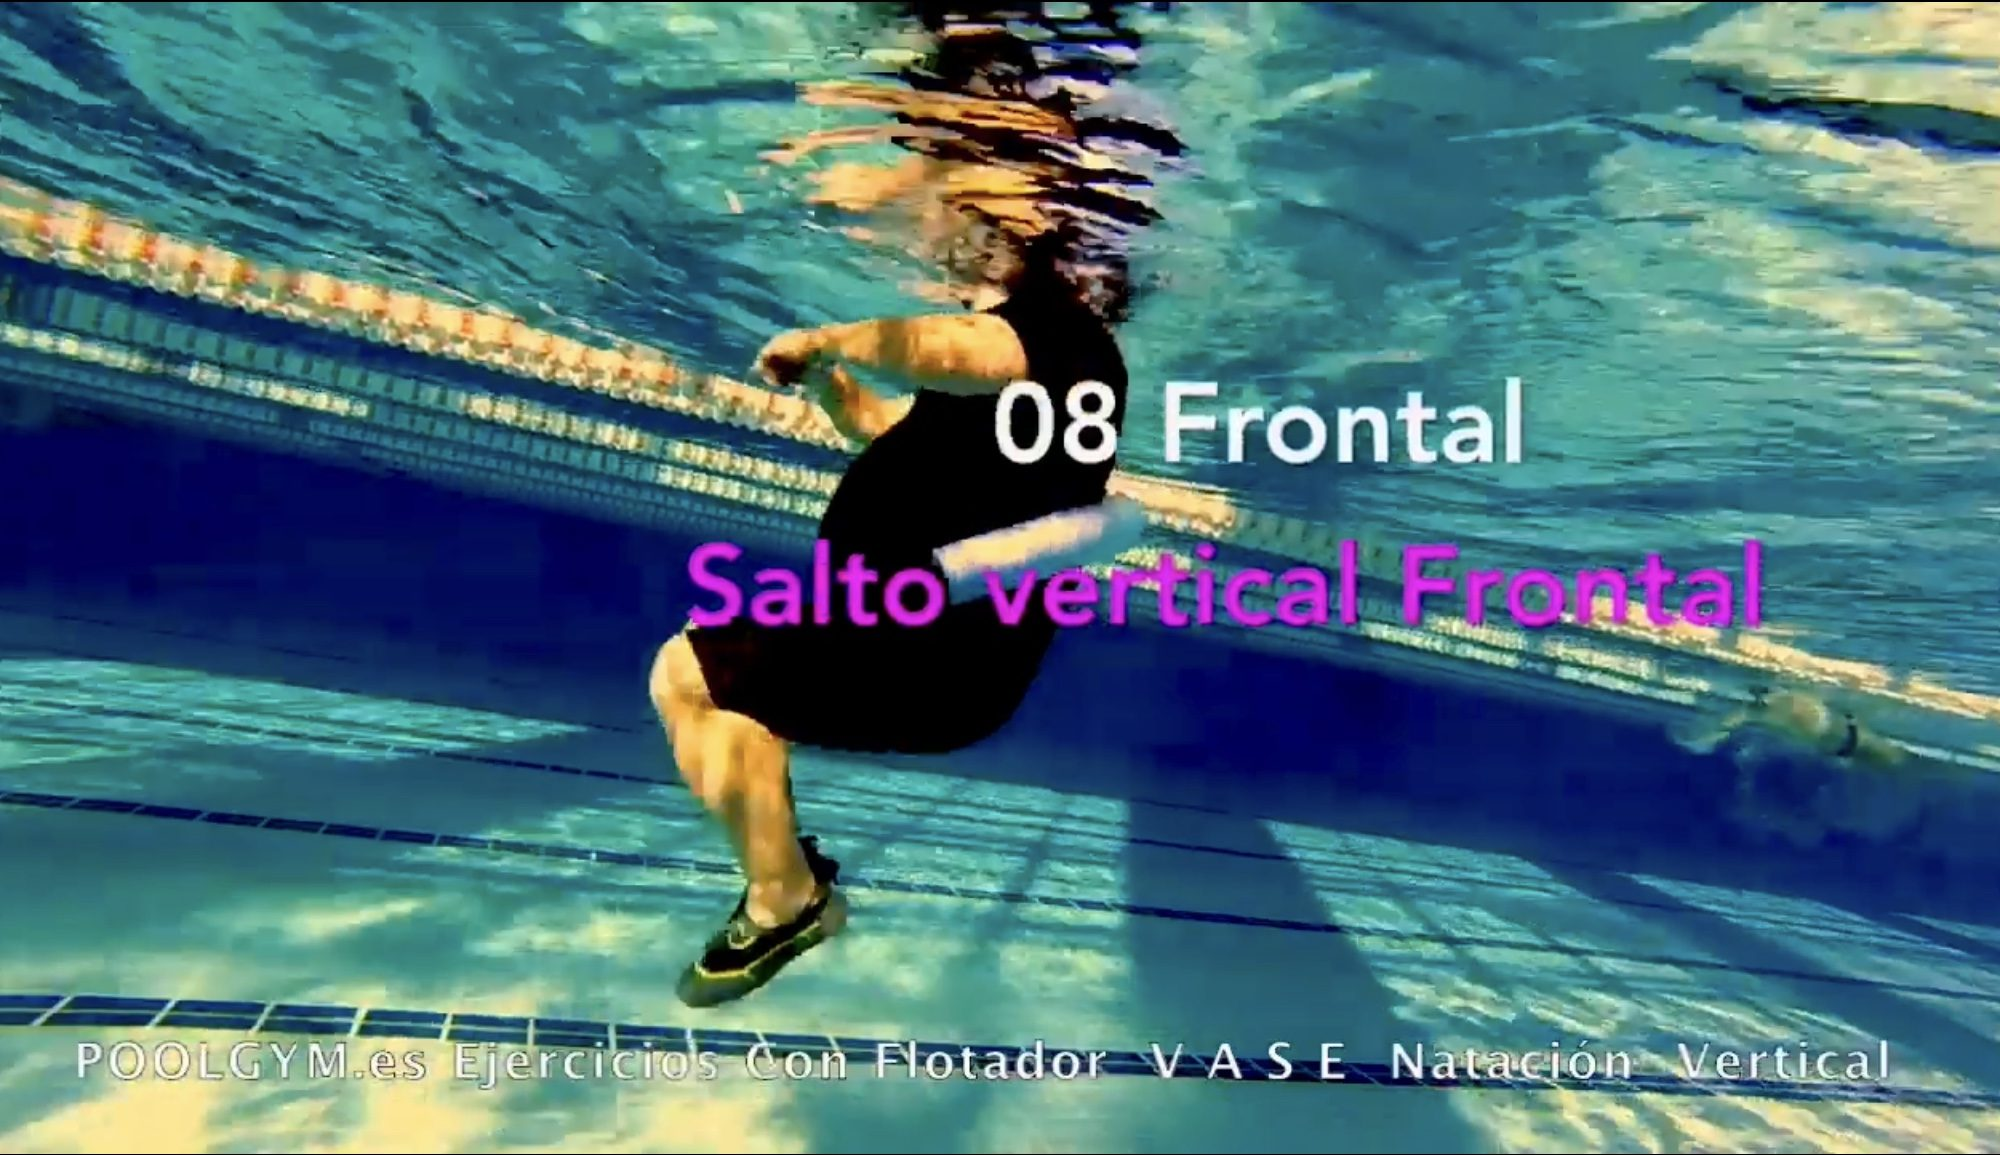 08 Frontal SALTO VERTICAL poolgym.ES